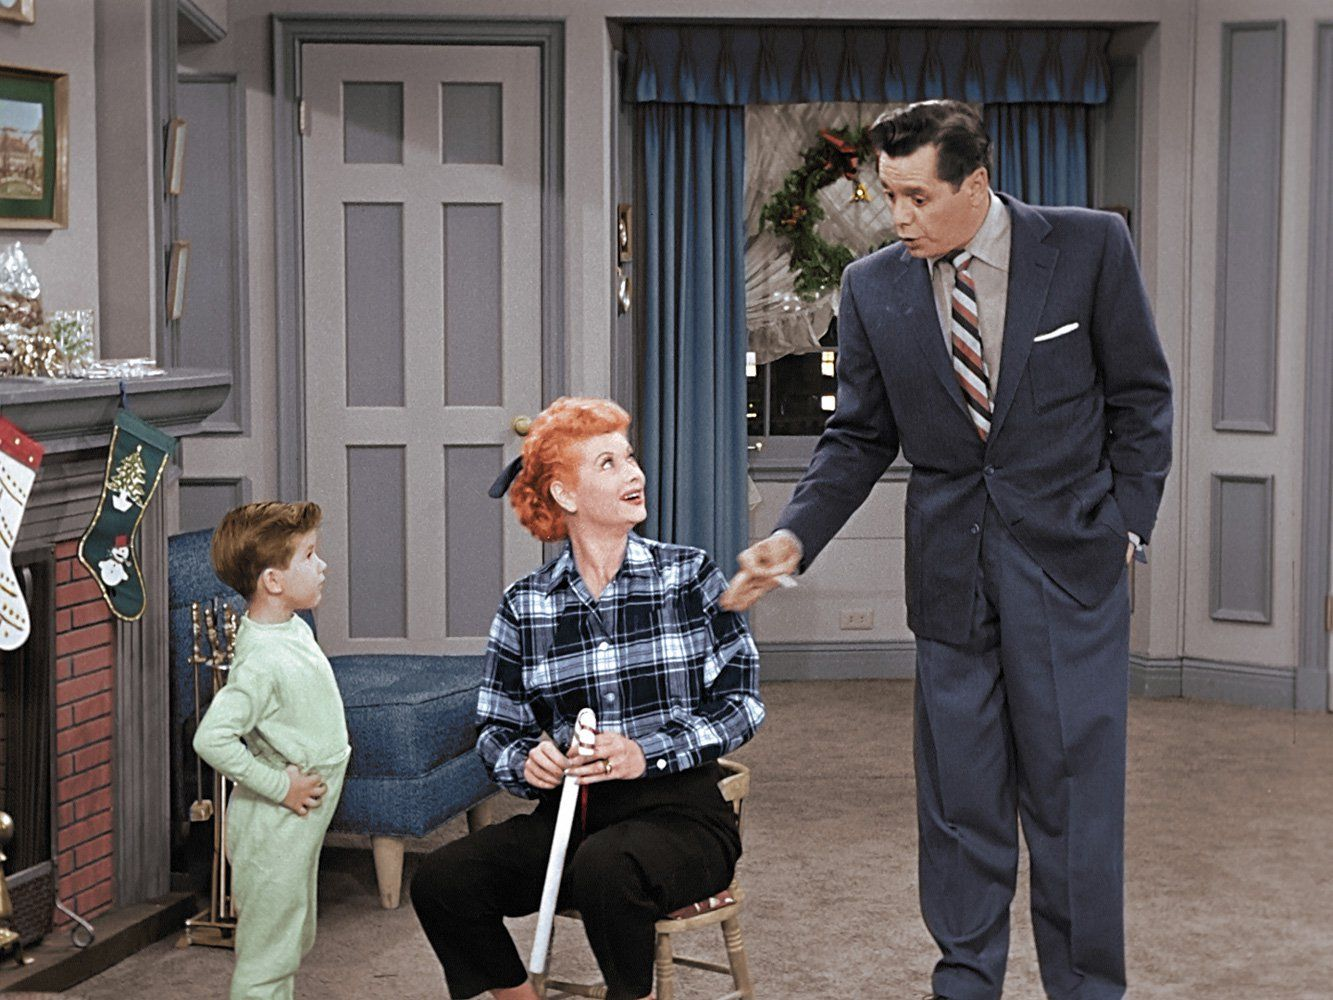 When Is The I Love Lucy Christmas Special On For 2020? Parade in 2020 | I love lucy, Love lucy, I love lucy show